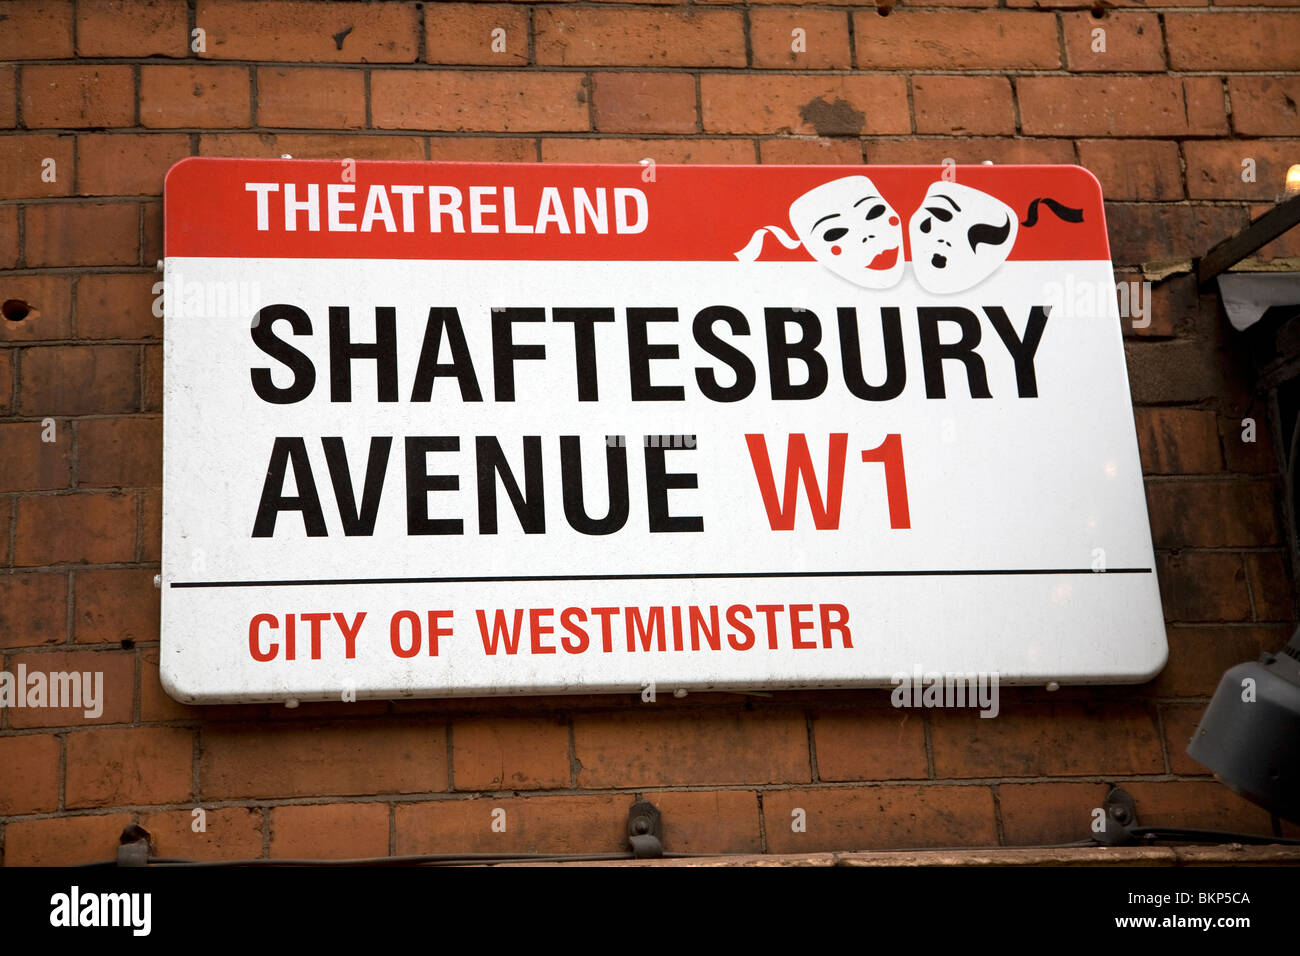 Street sign Shaftesbury Avenue, Theatreland, London, W1, England, City of Westminster - Stock Image